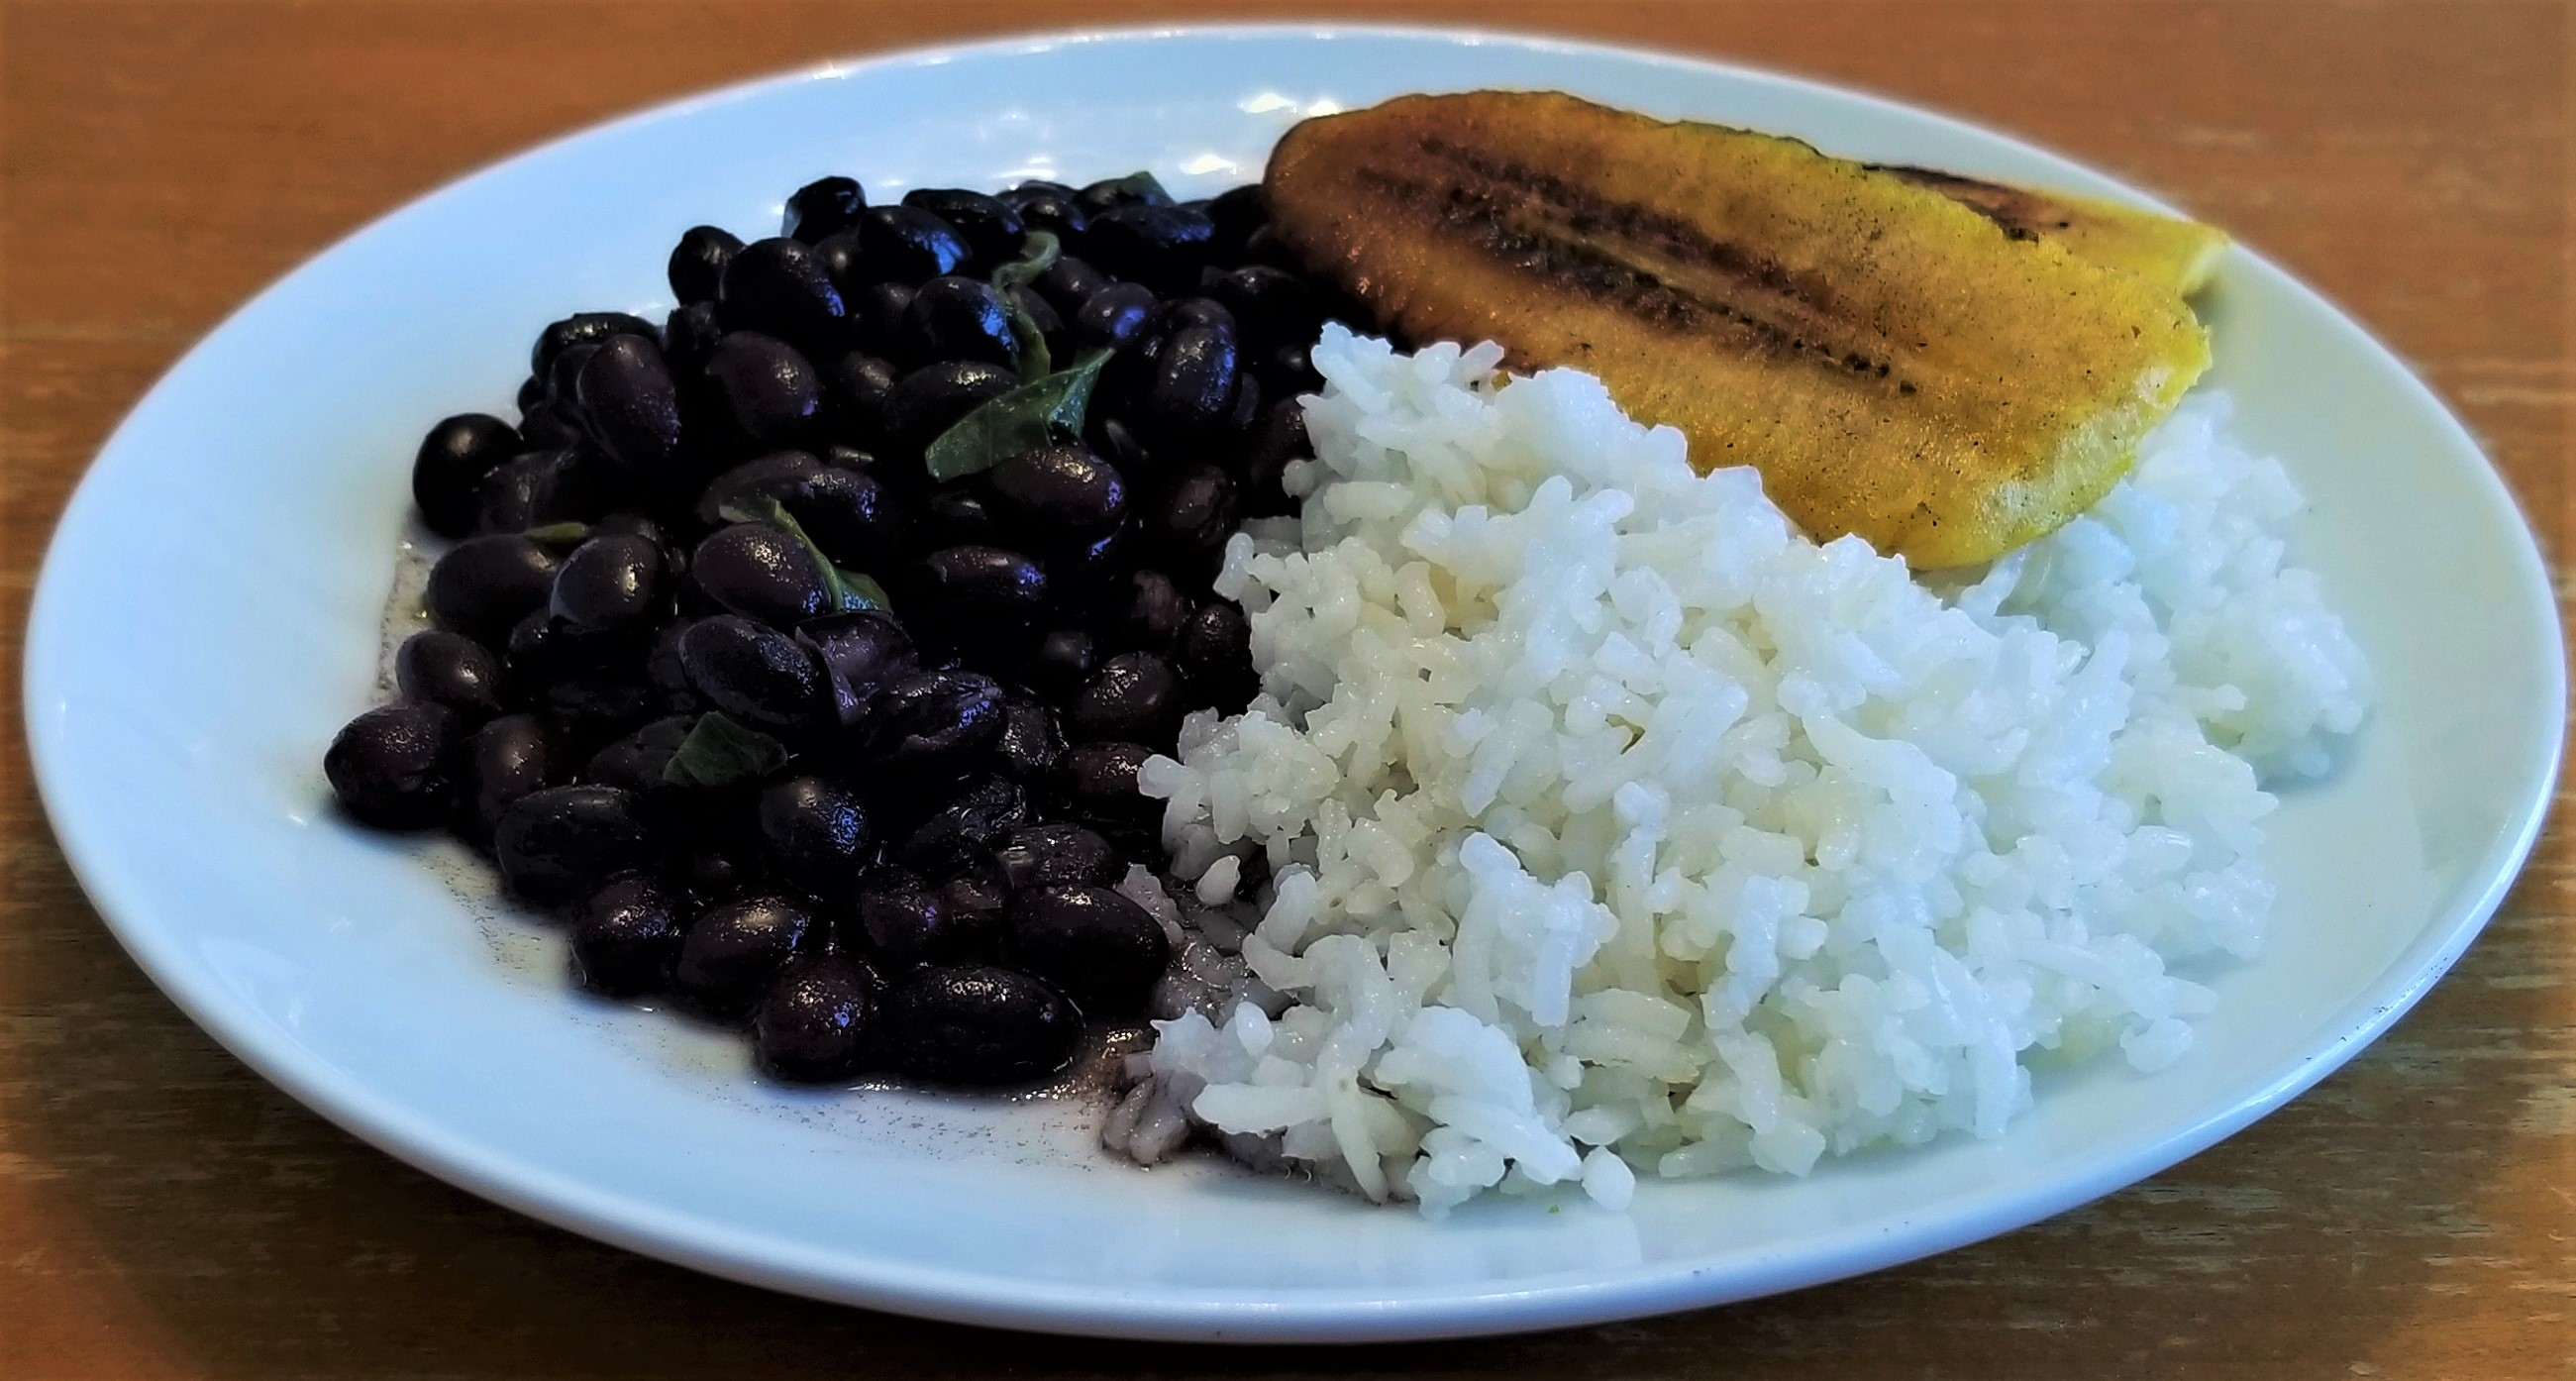 000 Beans rice and plantain